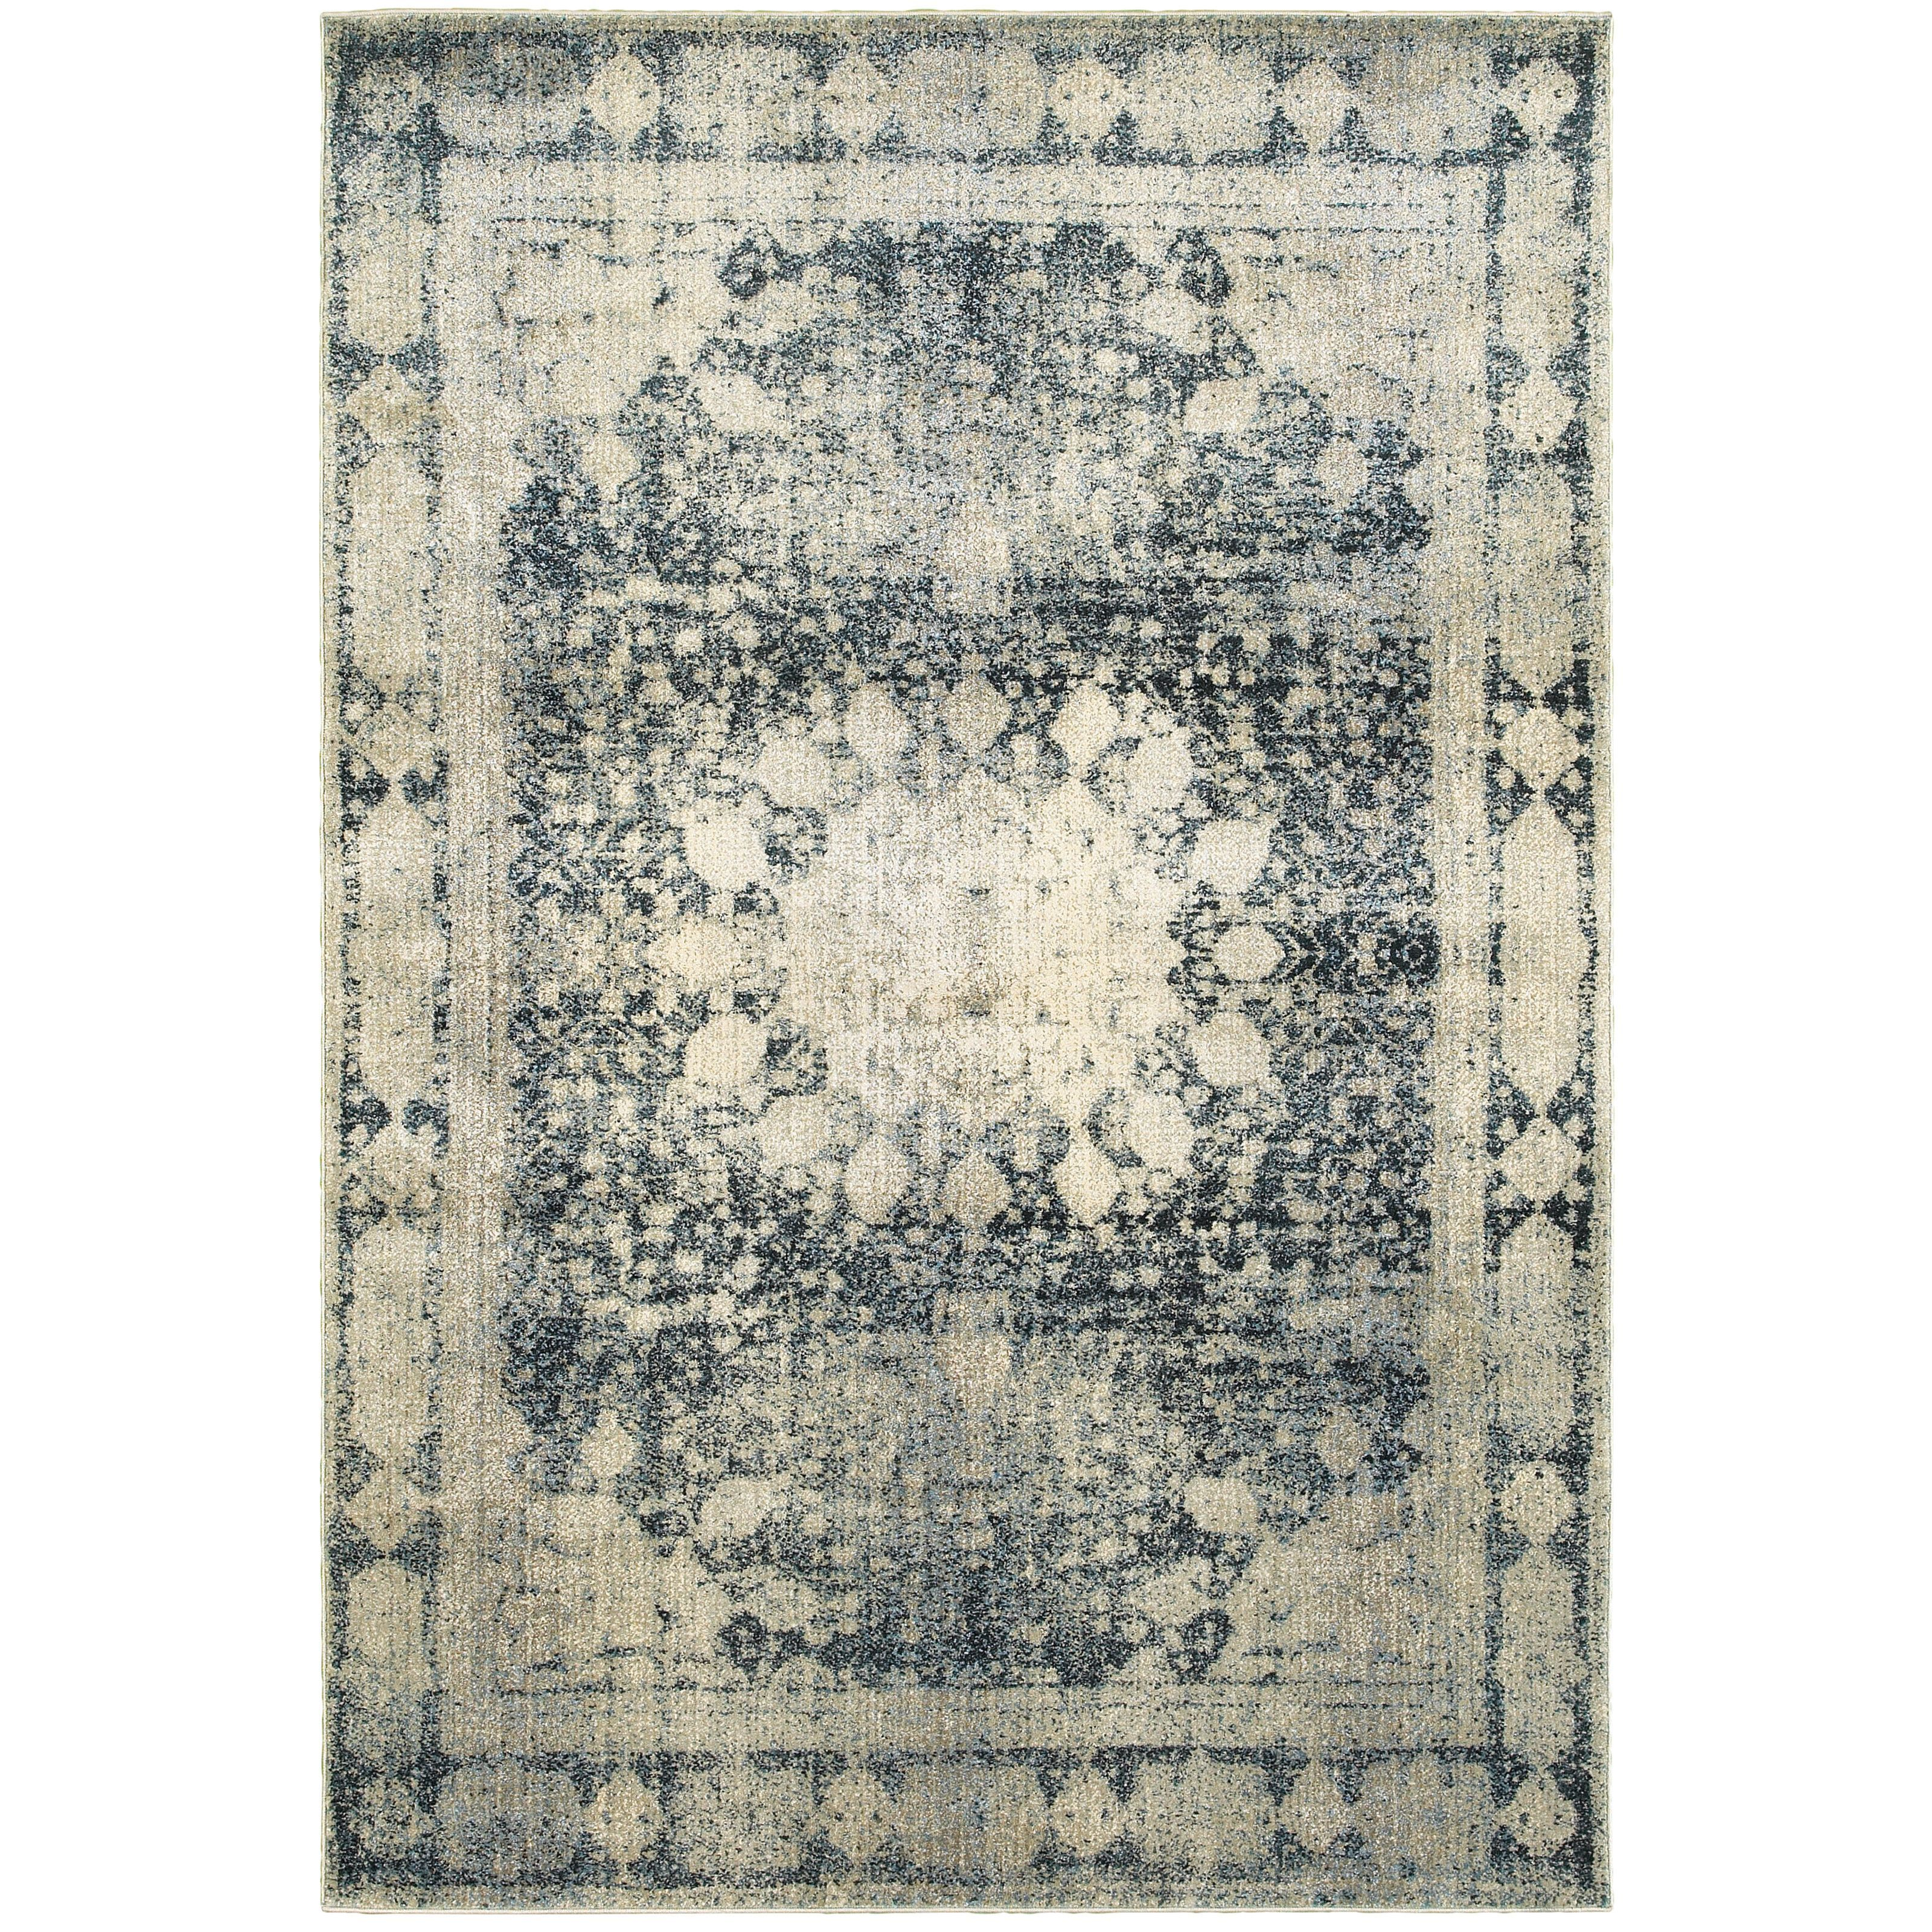 Oriental Weavers Empire 4445s Ivory Blue Oriental Area Rug Area Rugs Blue Area Rugs Traditional Rugs